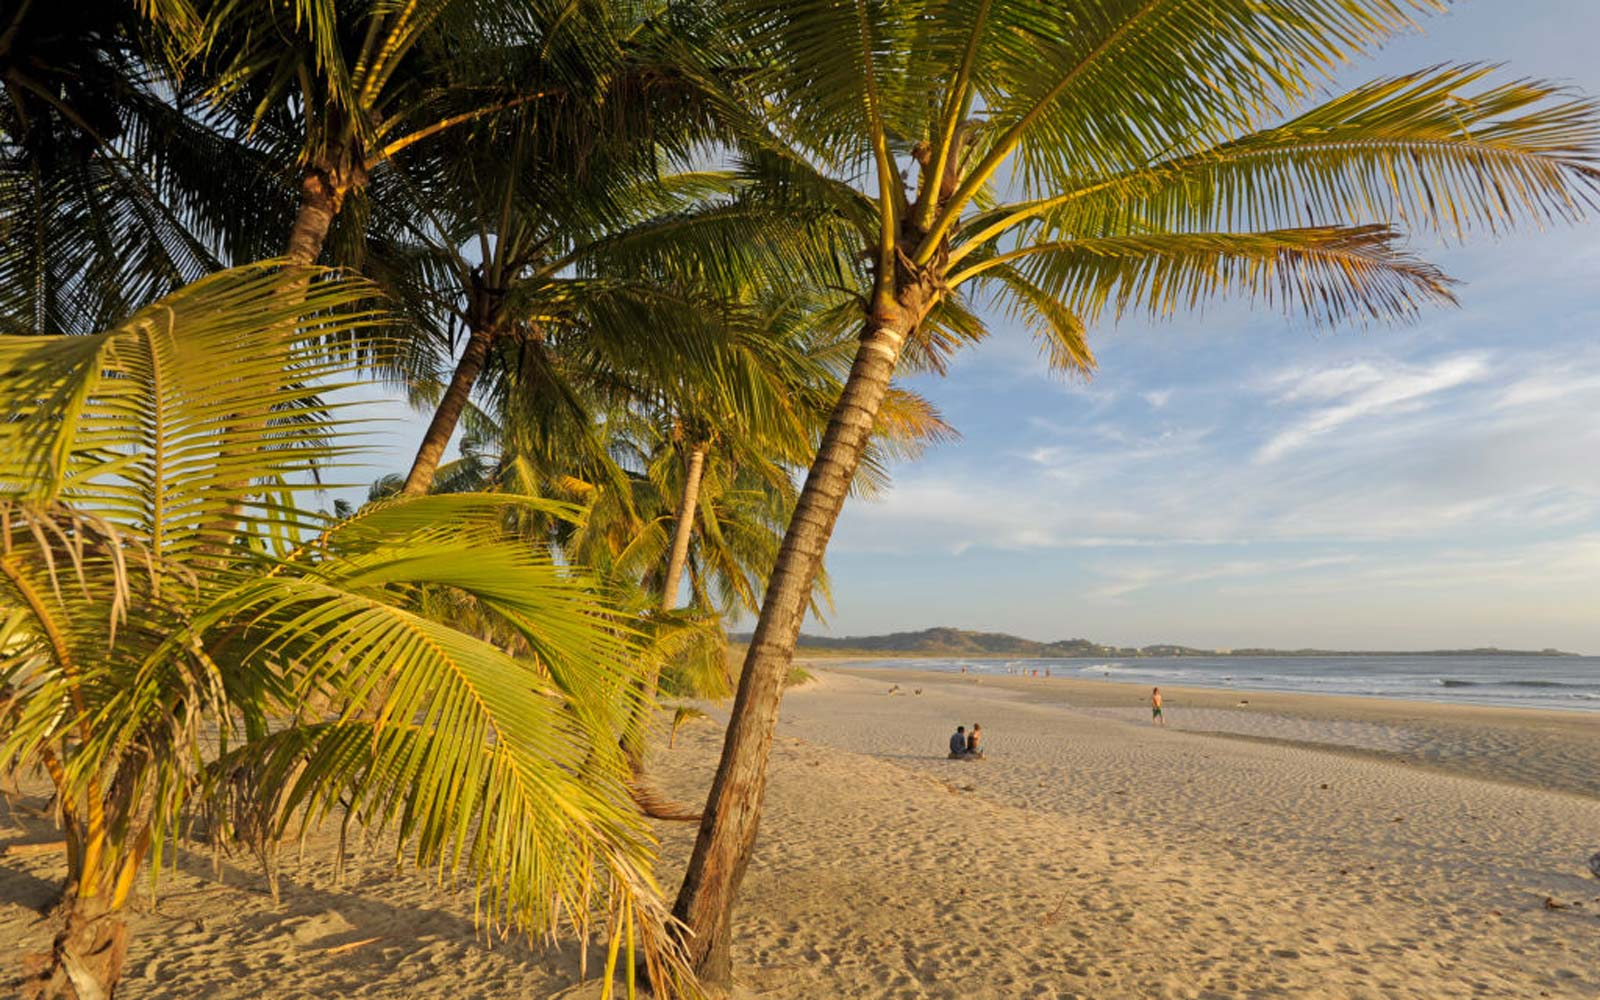 Sunset on Playa Grande beach, near Tamarindo